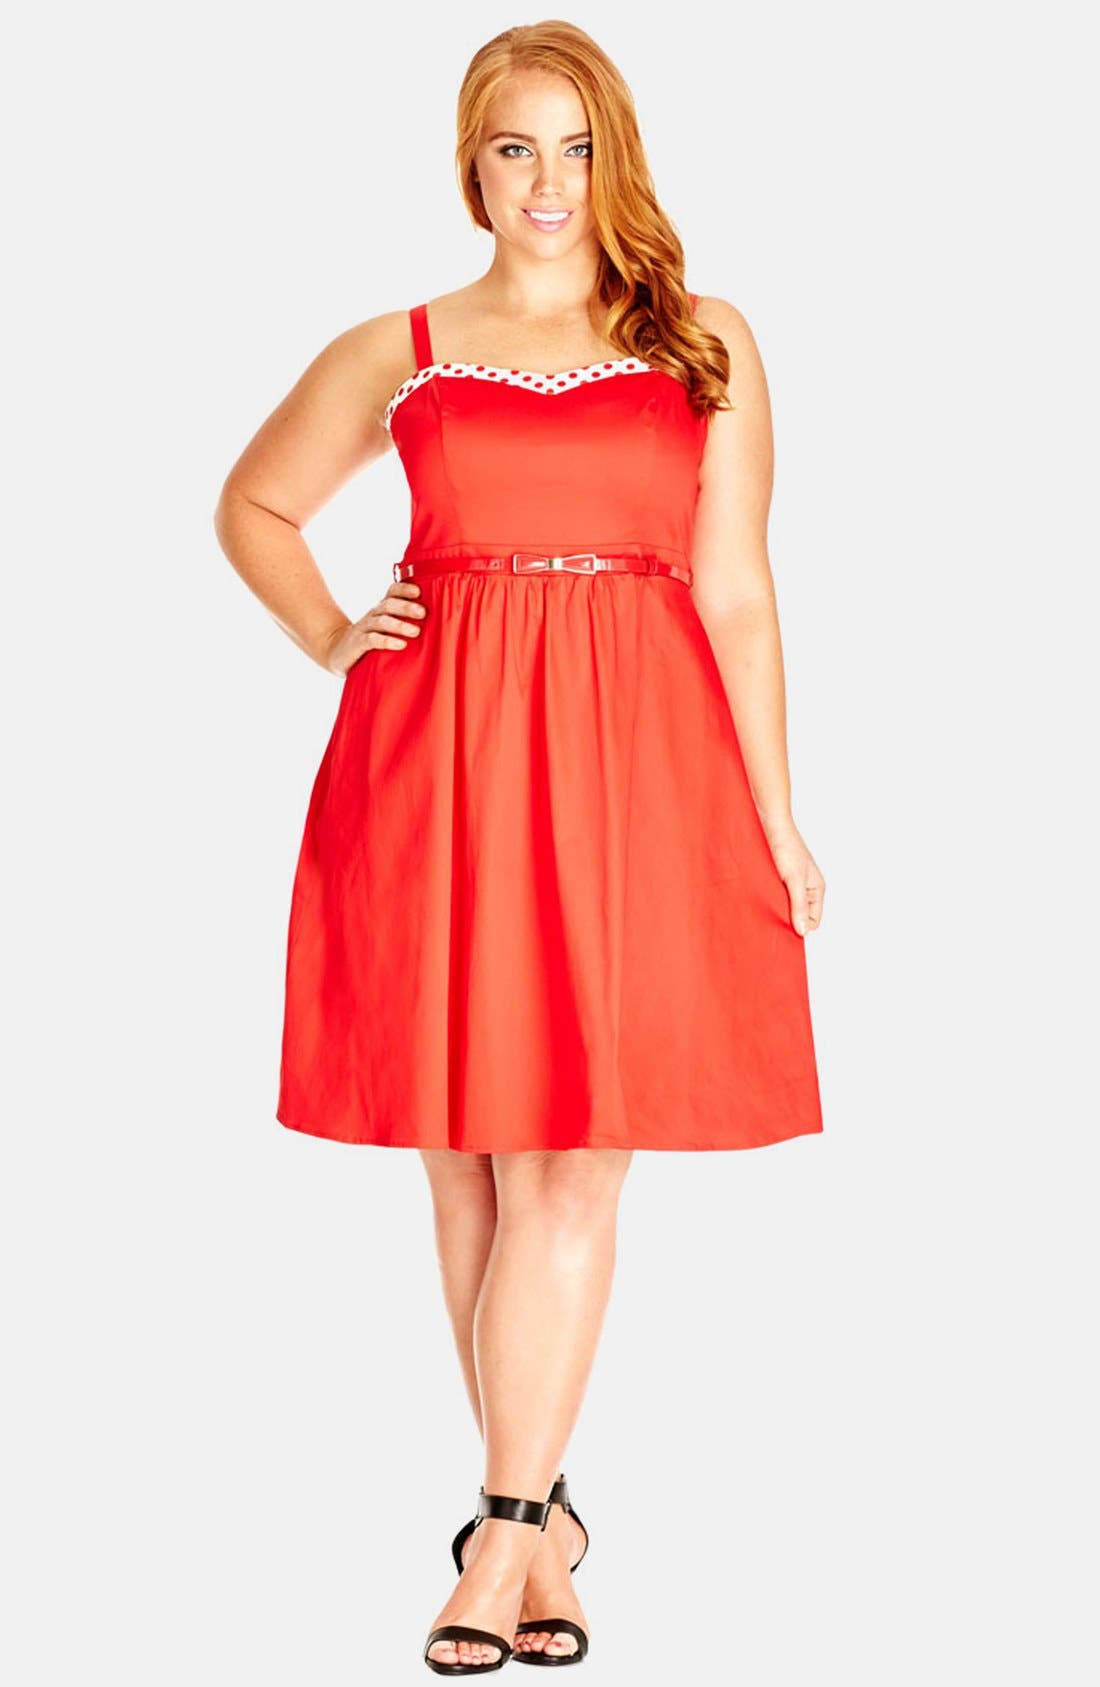 Alternate Image 1 Selected - City Chic 'Sweetheart' Fit & Flare Dress (Plus Size)